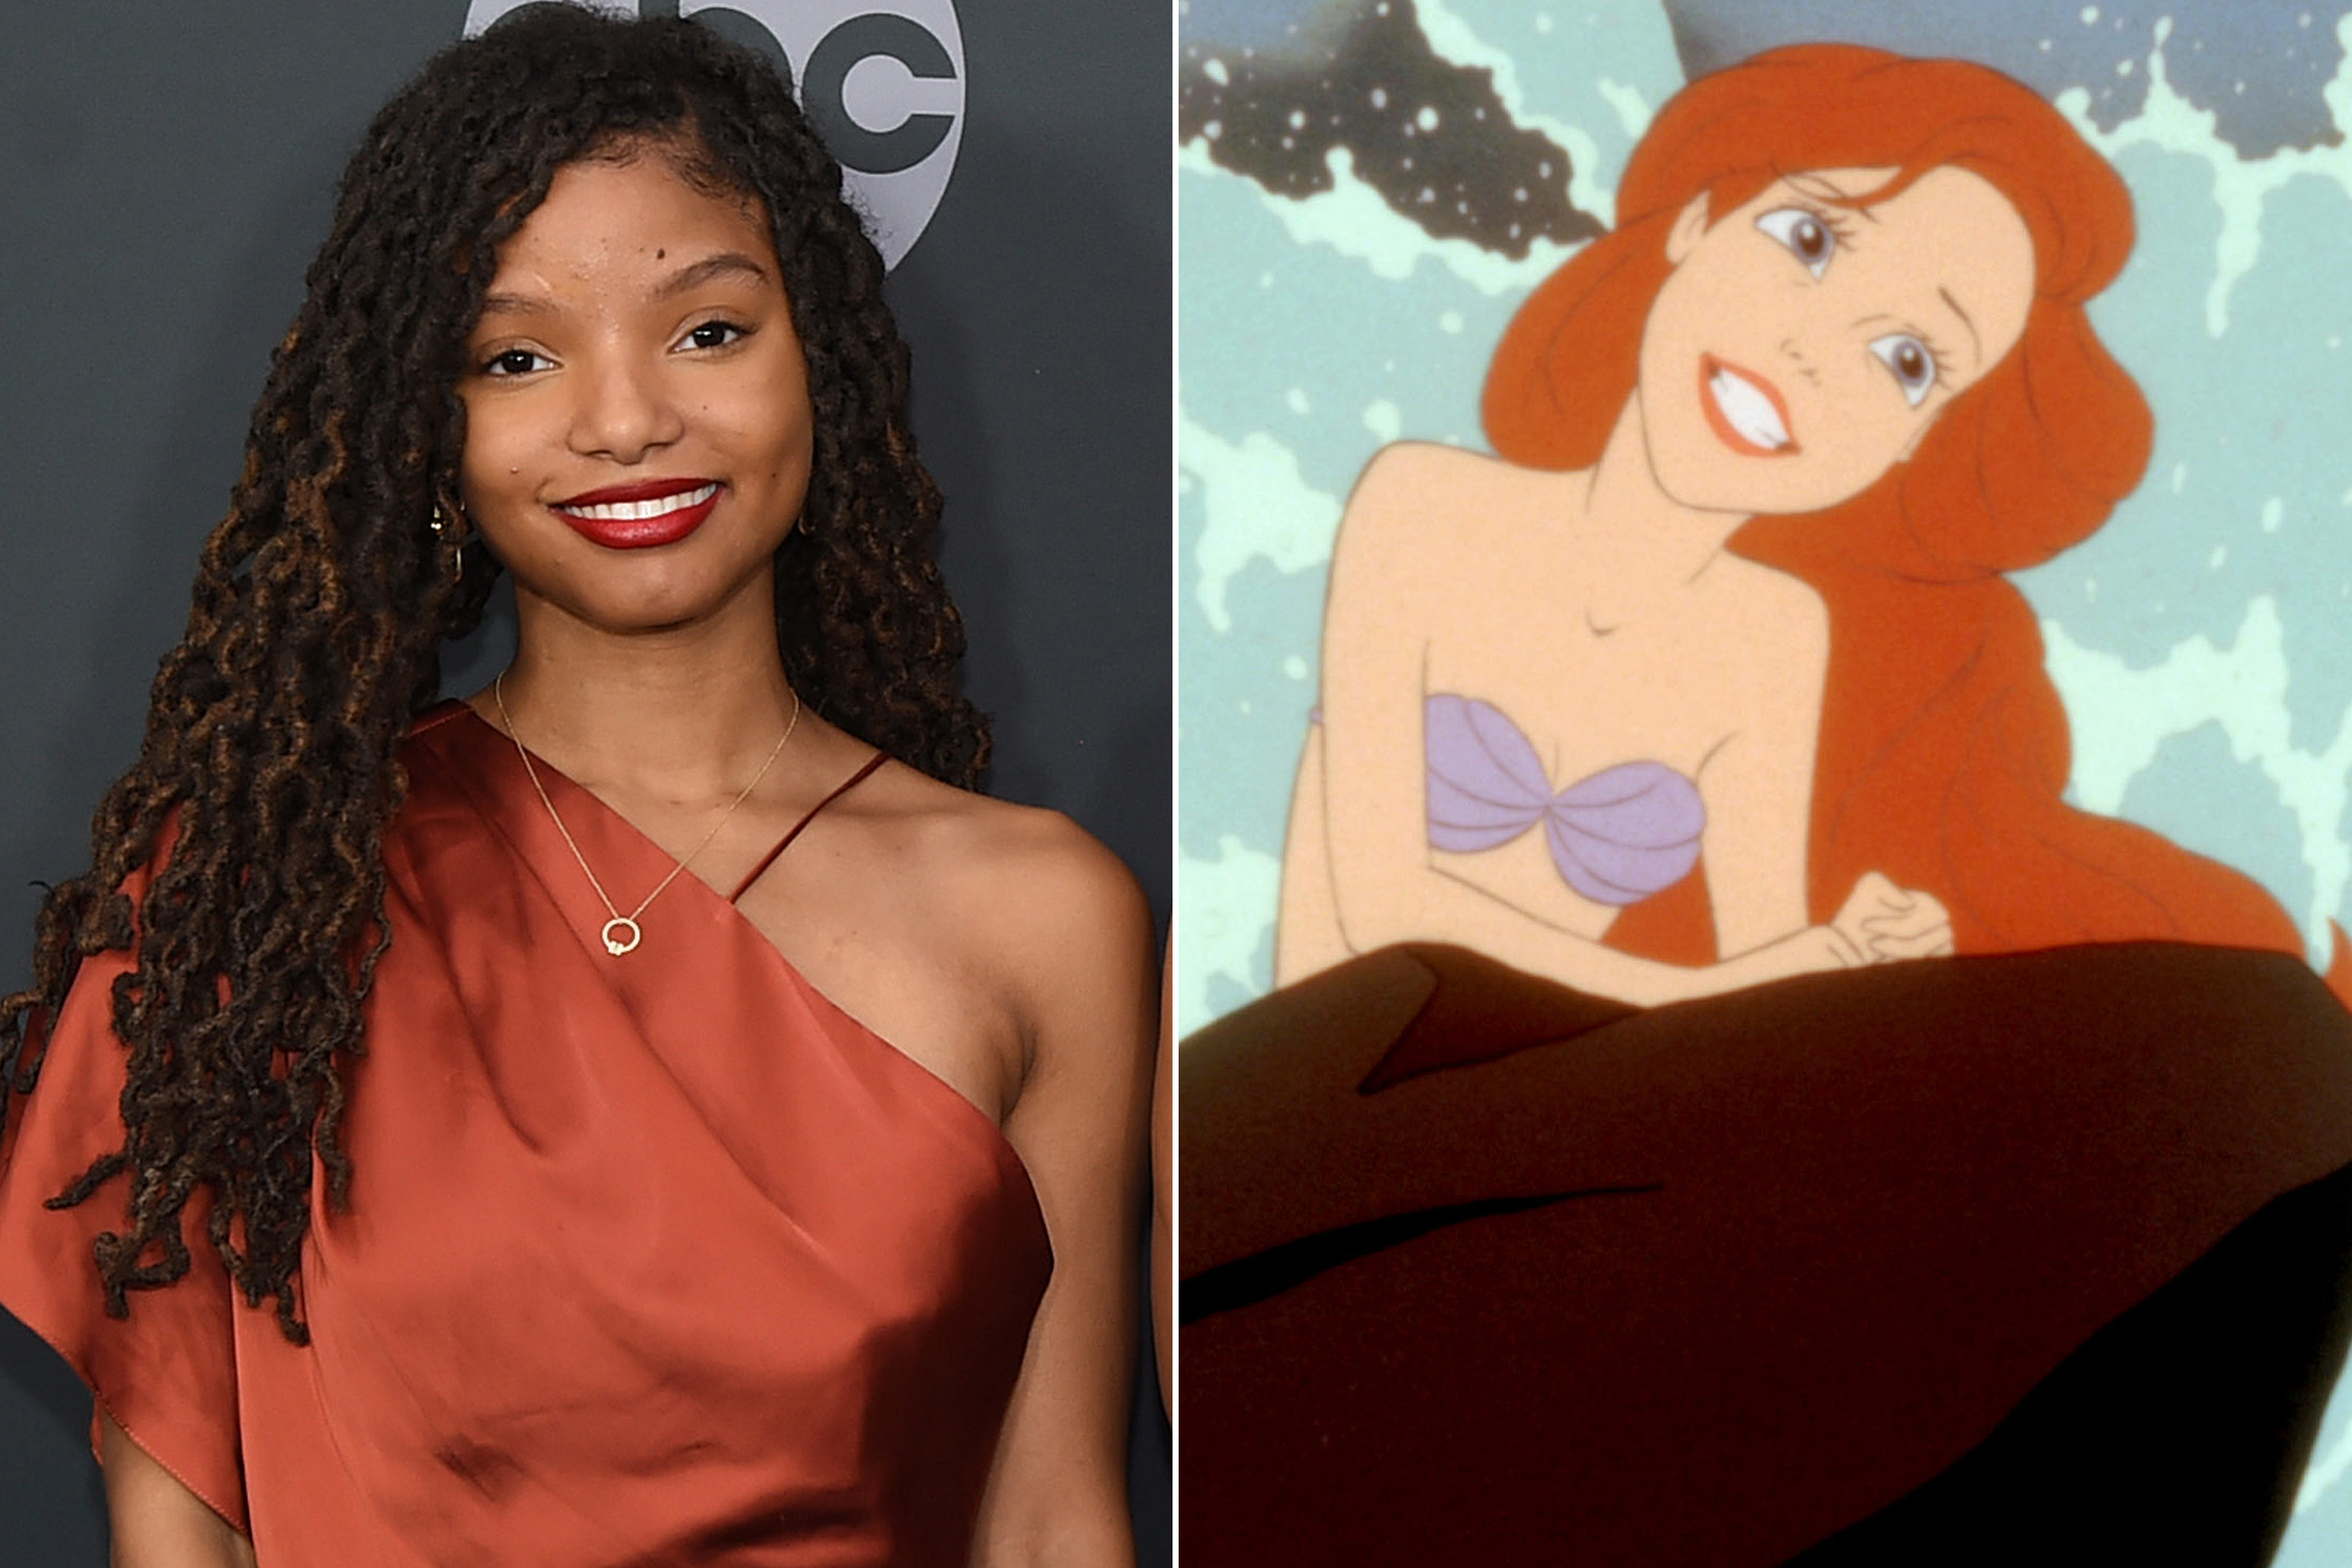 Halle Bailey and The Little Mermaid